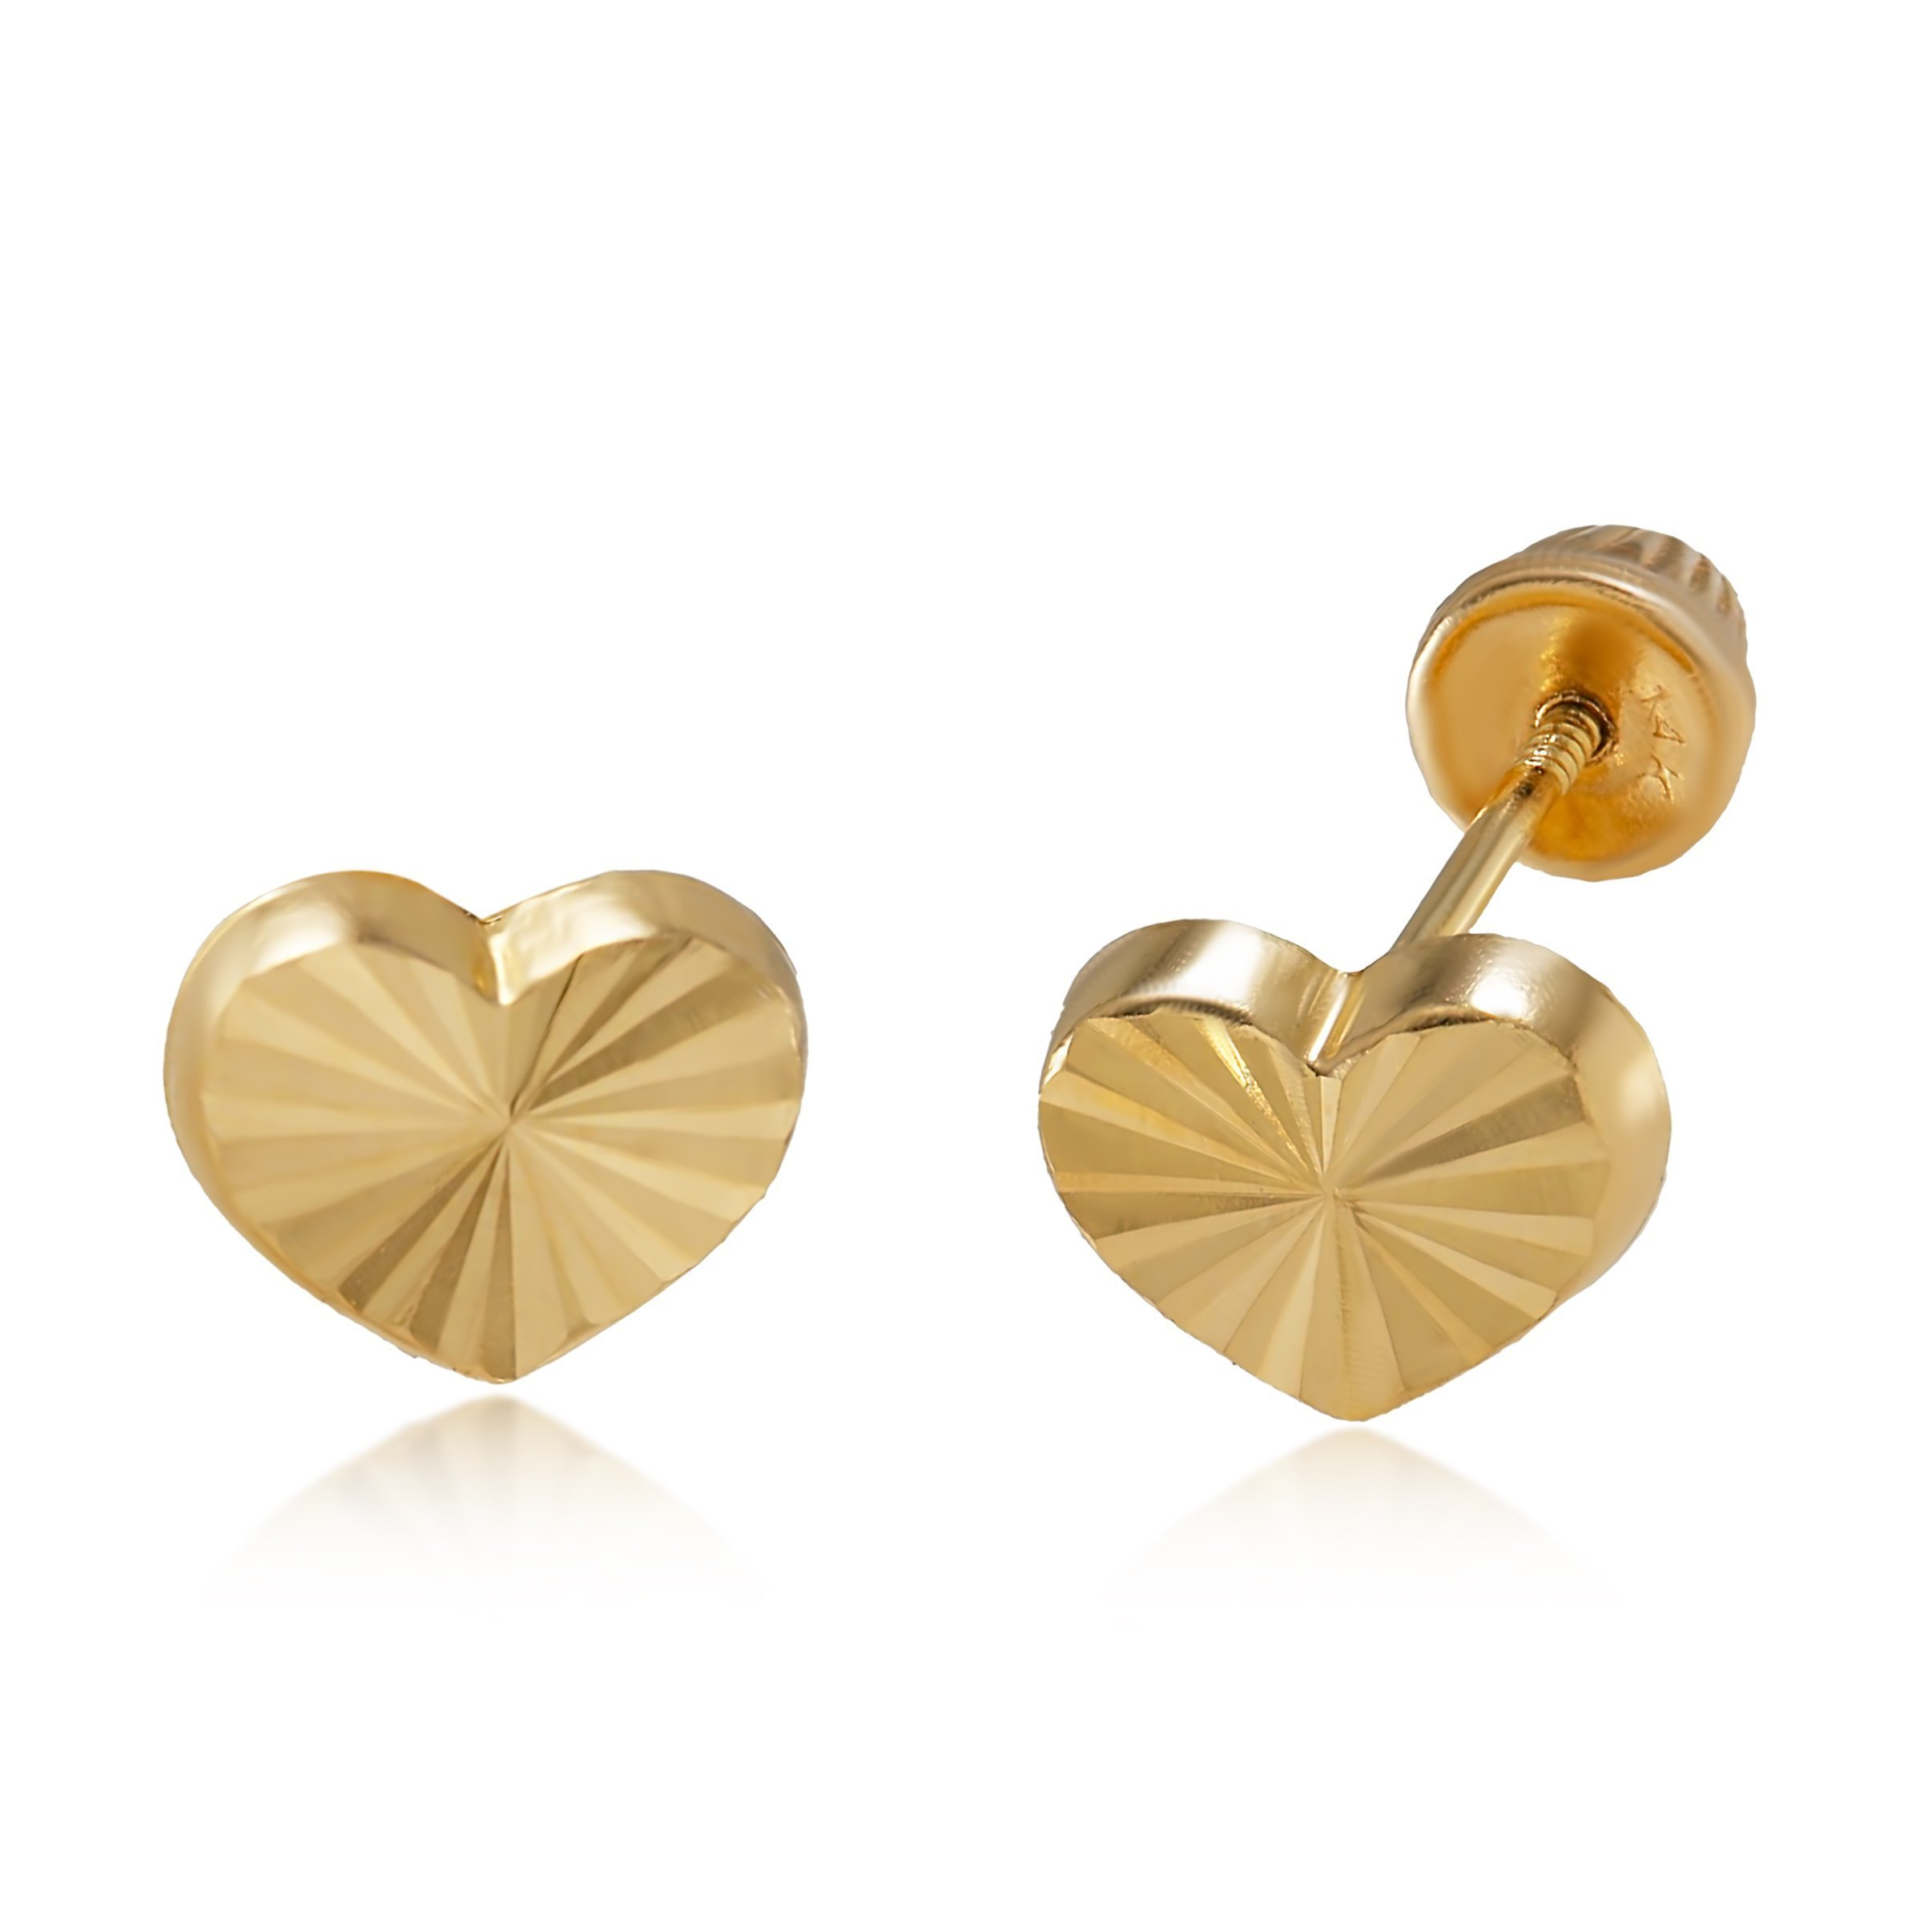 14K Yellow Gold Diamond Cut Heart Stud Earrings for Women & Girls - Hypoallergenic for Sensitive Ears